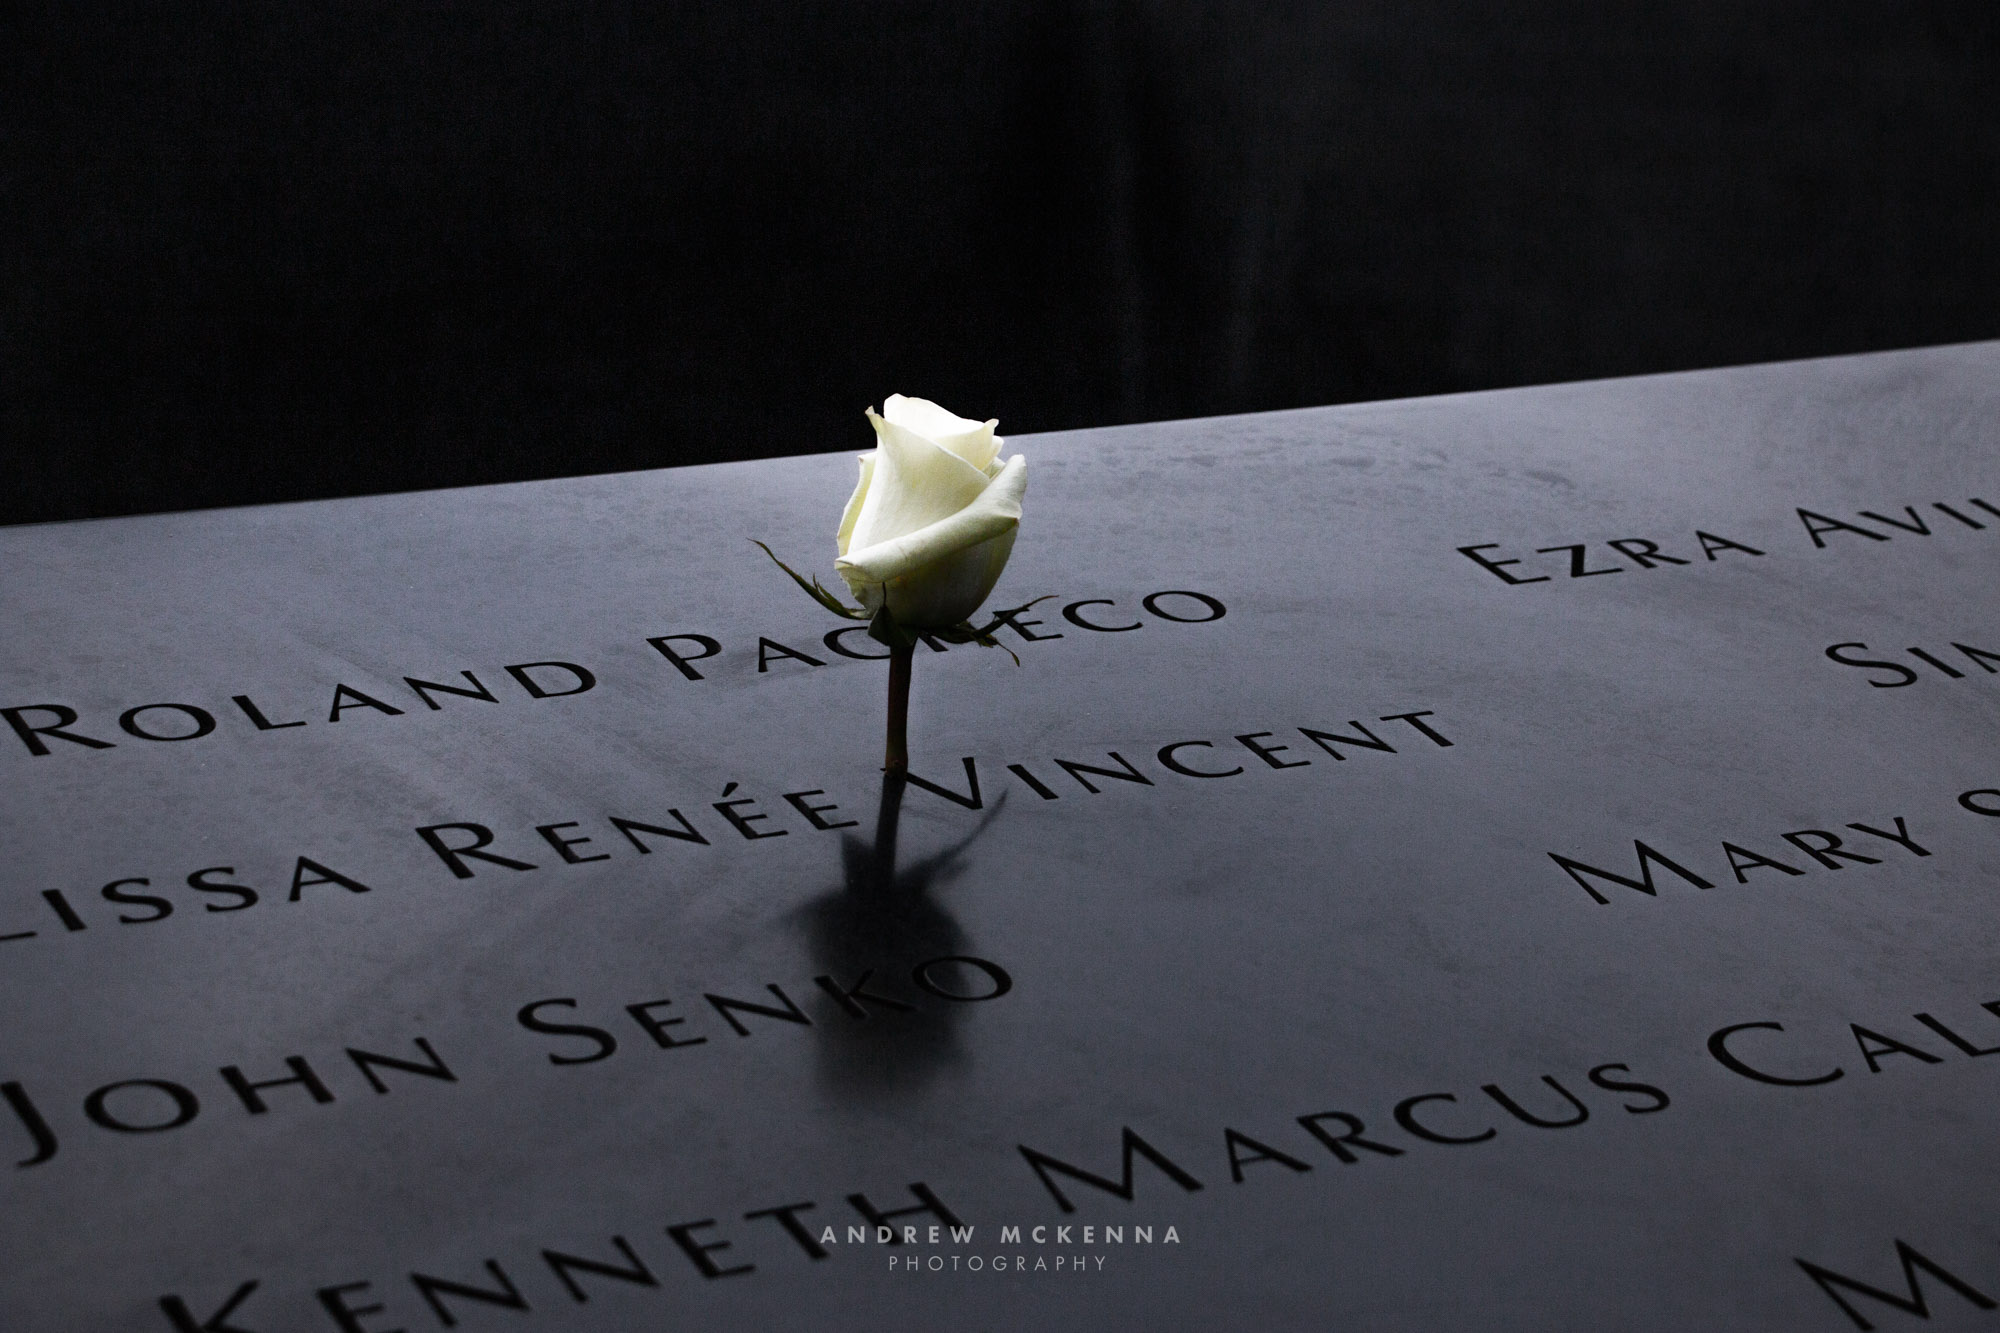 New York NYC Photographer Travel photographer 911 memorial